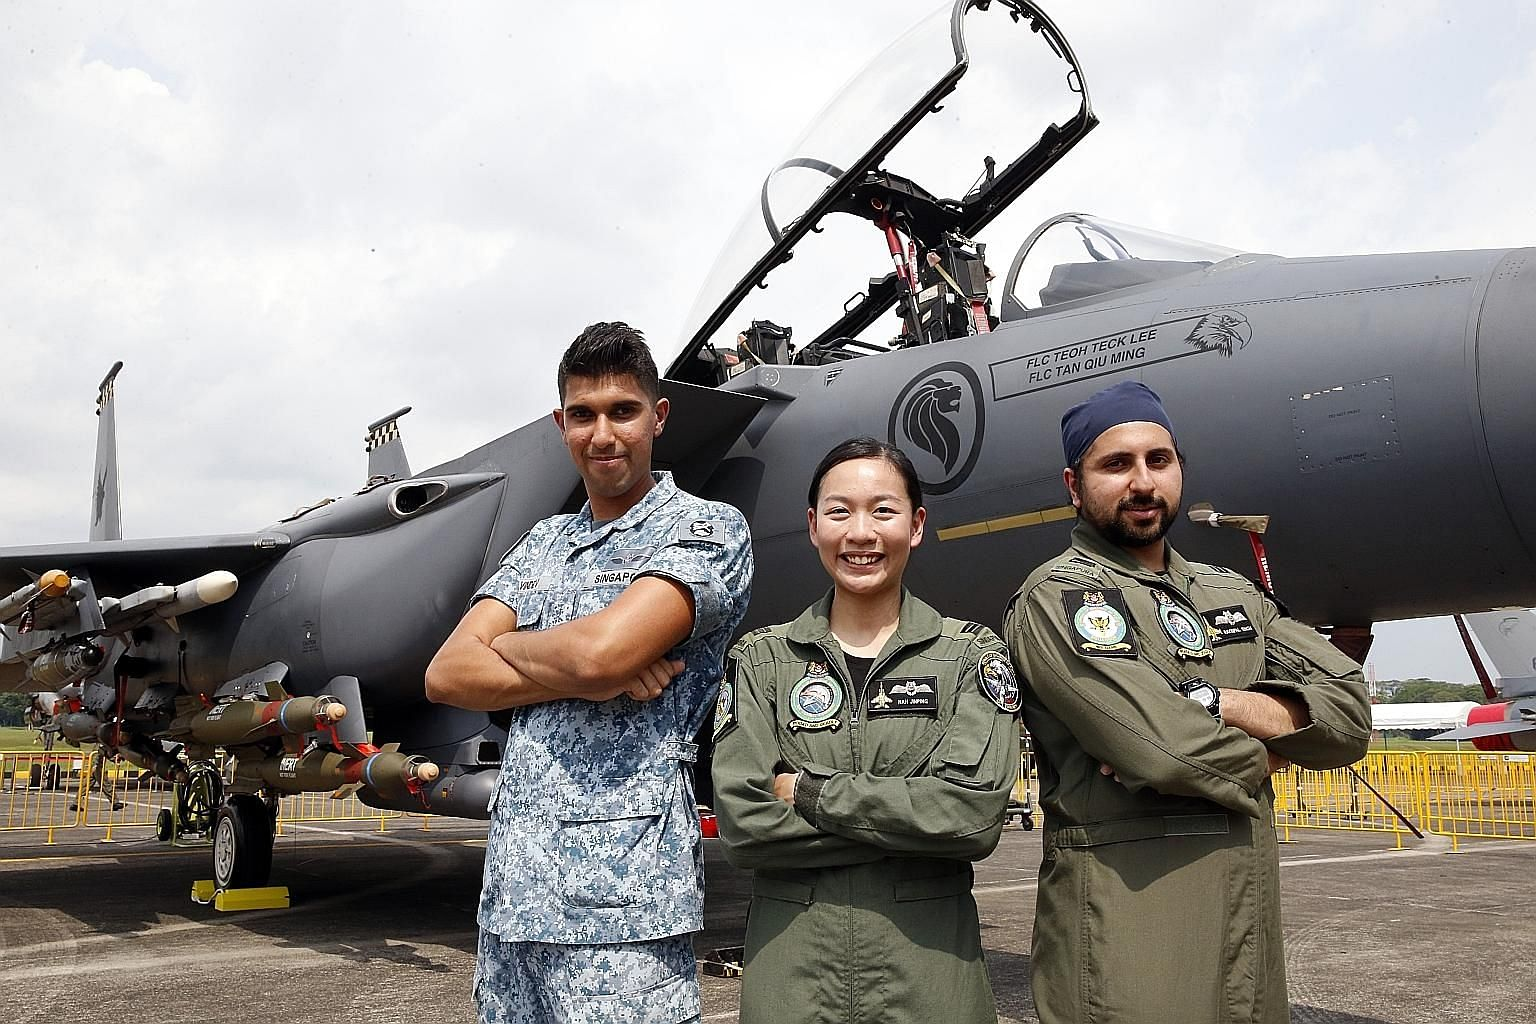 The RSAF personnel involved in the aerial display are (from left) Third Sergeant Singh, and fighter pilots Capt Nah and Captain Ravinpal Singh. The RSAF Open House is open to the public this weekend and admission is free.